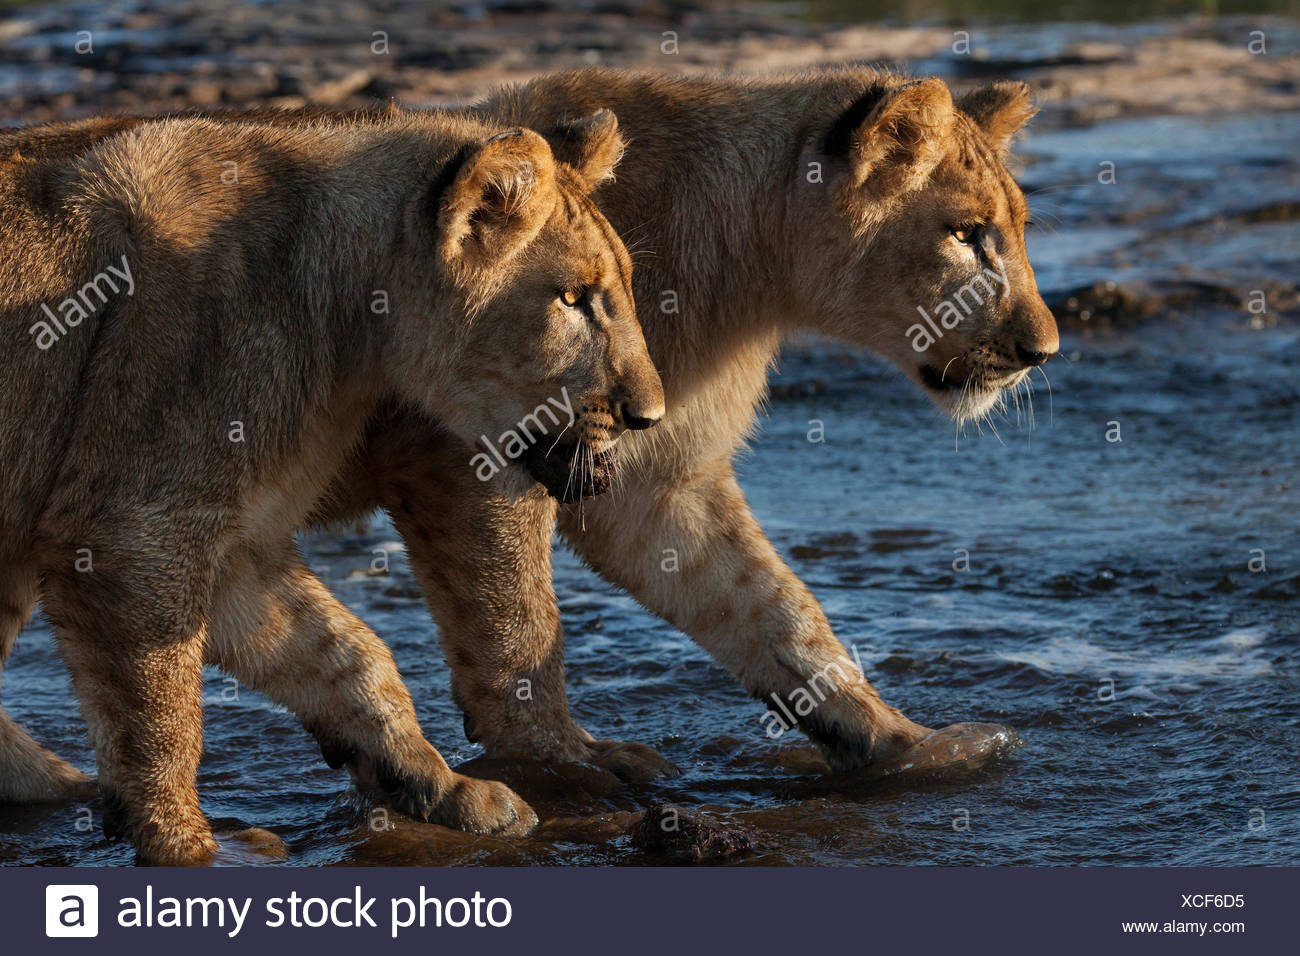 Two lion cubs, Panthera leo, stalk intently in shallow water. - Stock Image